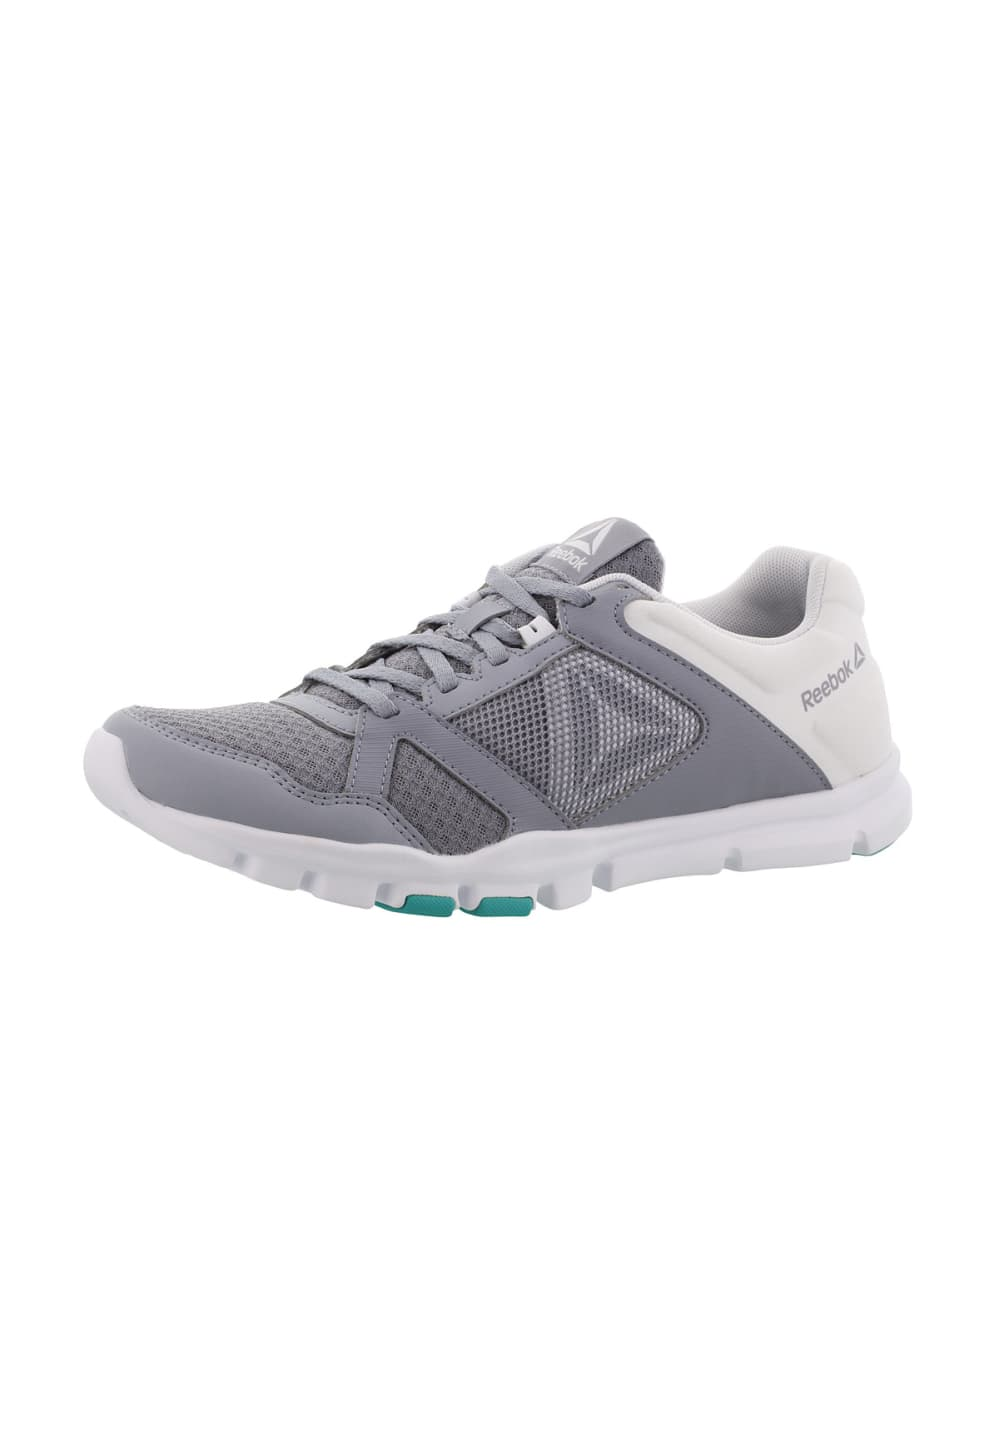 2d268009b582 Next. -50%. This product is currently out of stock. Reebok. Yourflex  Trainette 10 Mt - Fitness shoes for Women